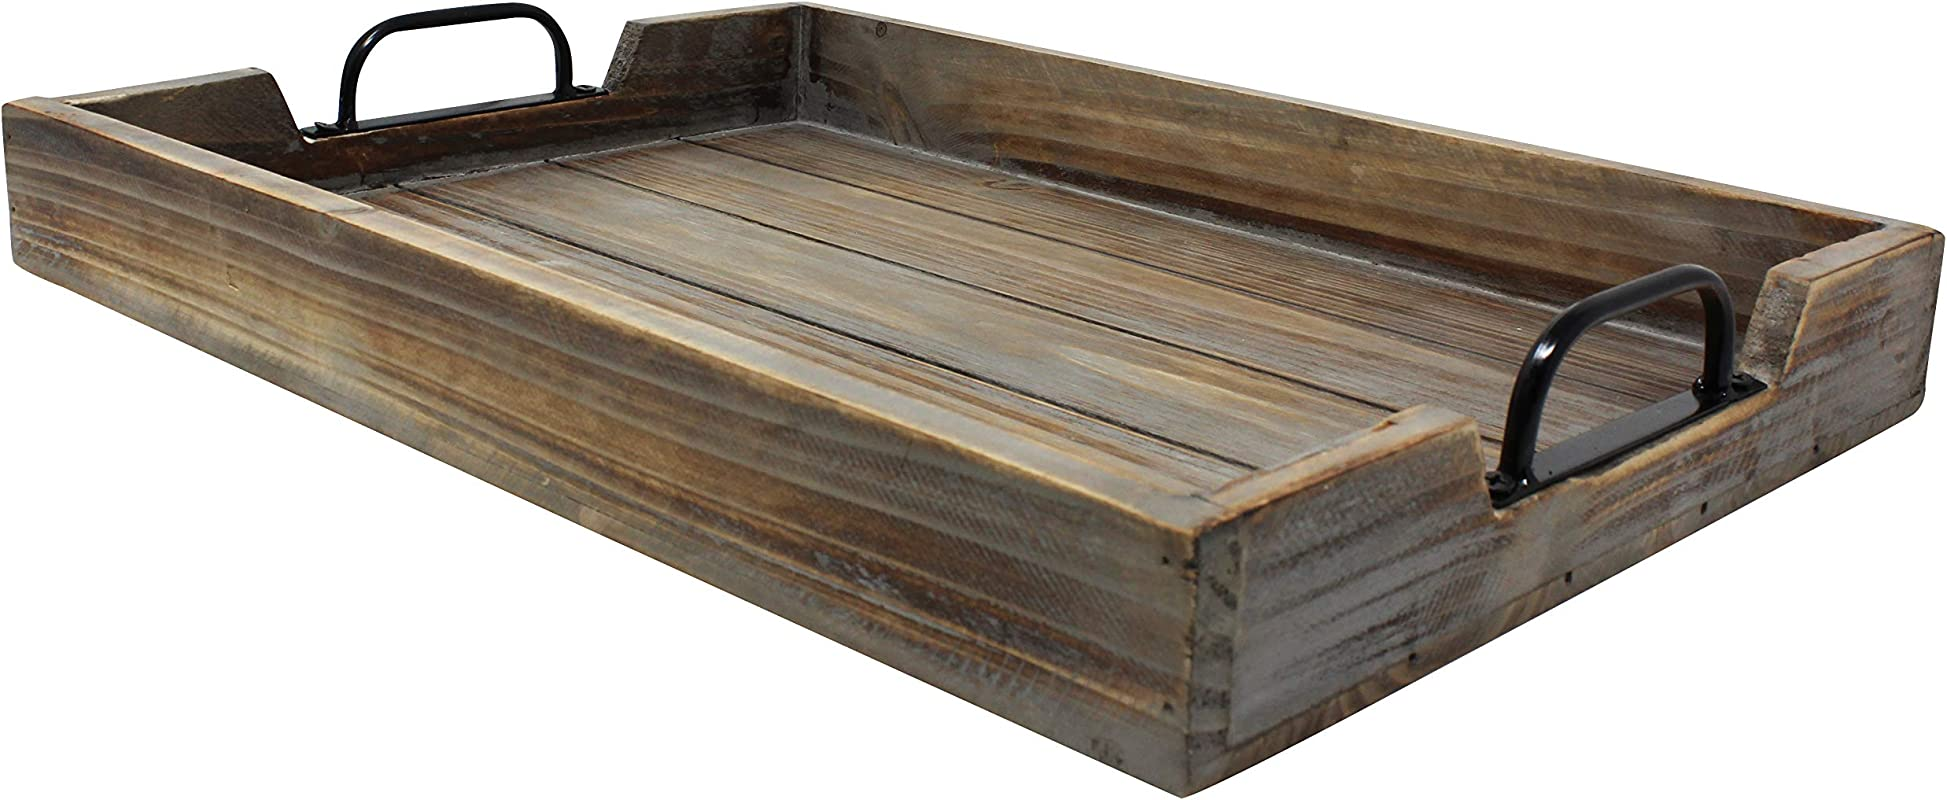 Large 14x20 Decorative Vintage Wood Serving Tray For Coffee Table Or Ottoman Rustic Wooden Breakfast Trays For Kitchen Dining Room Or Living Room Farmhouse Platter W Handles Barnwood